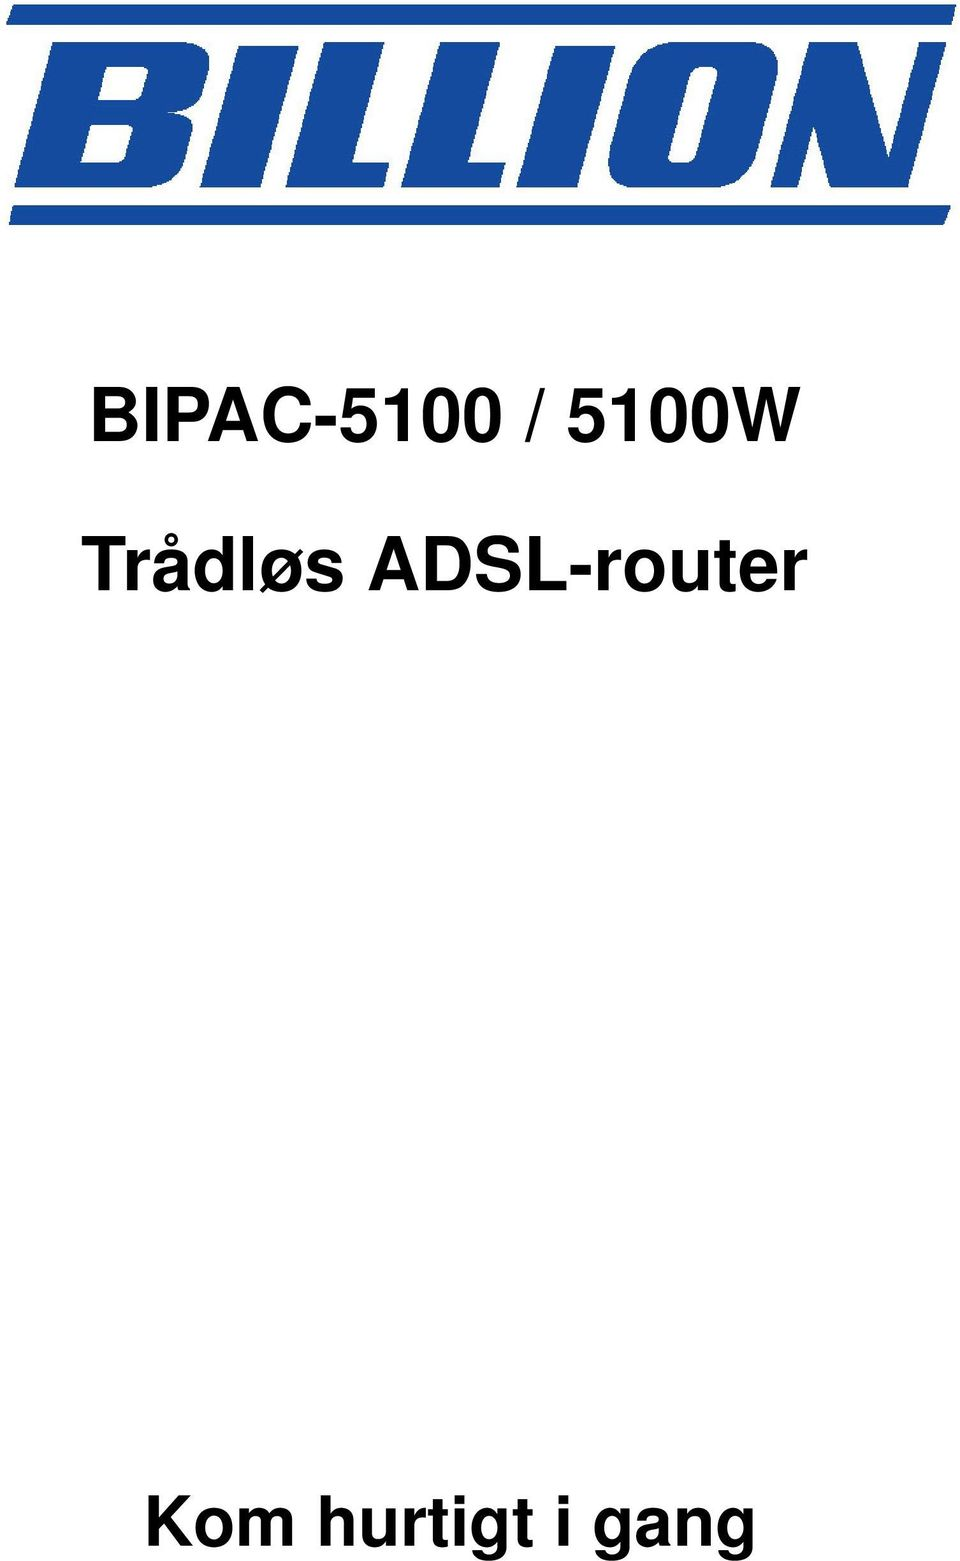 ADSL-router